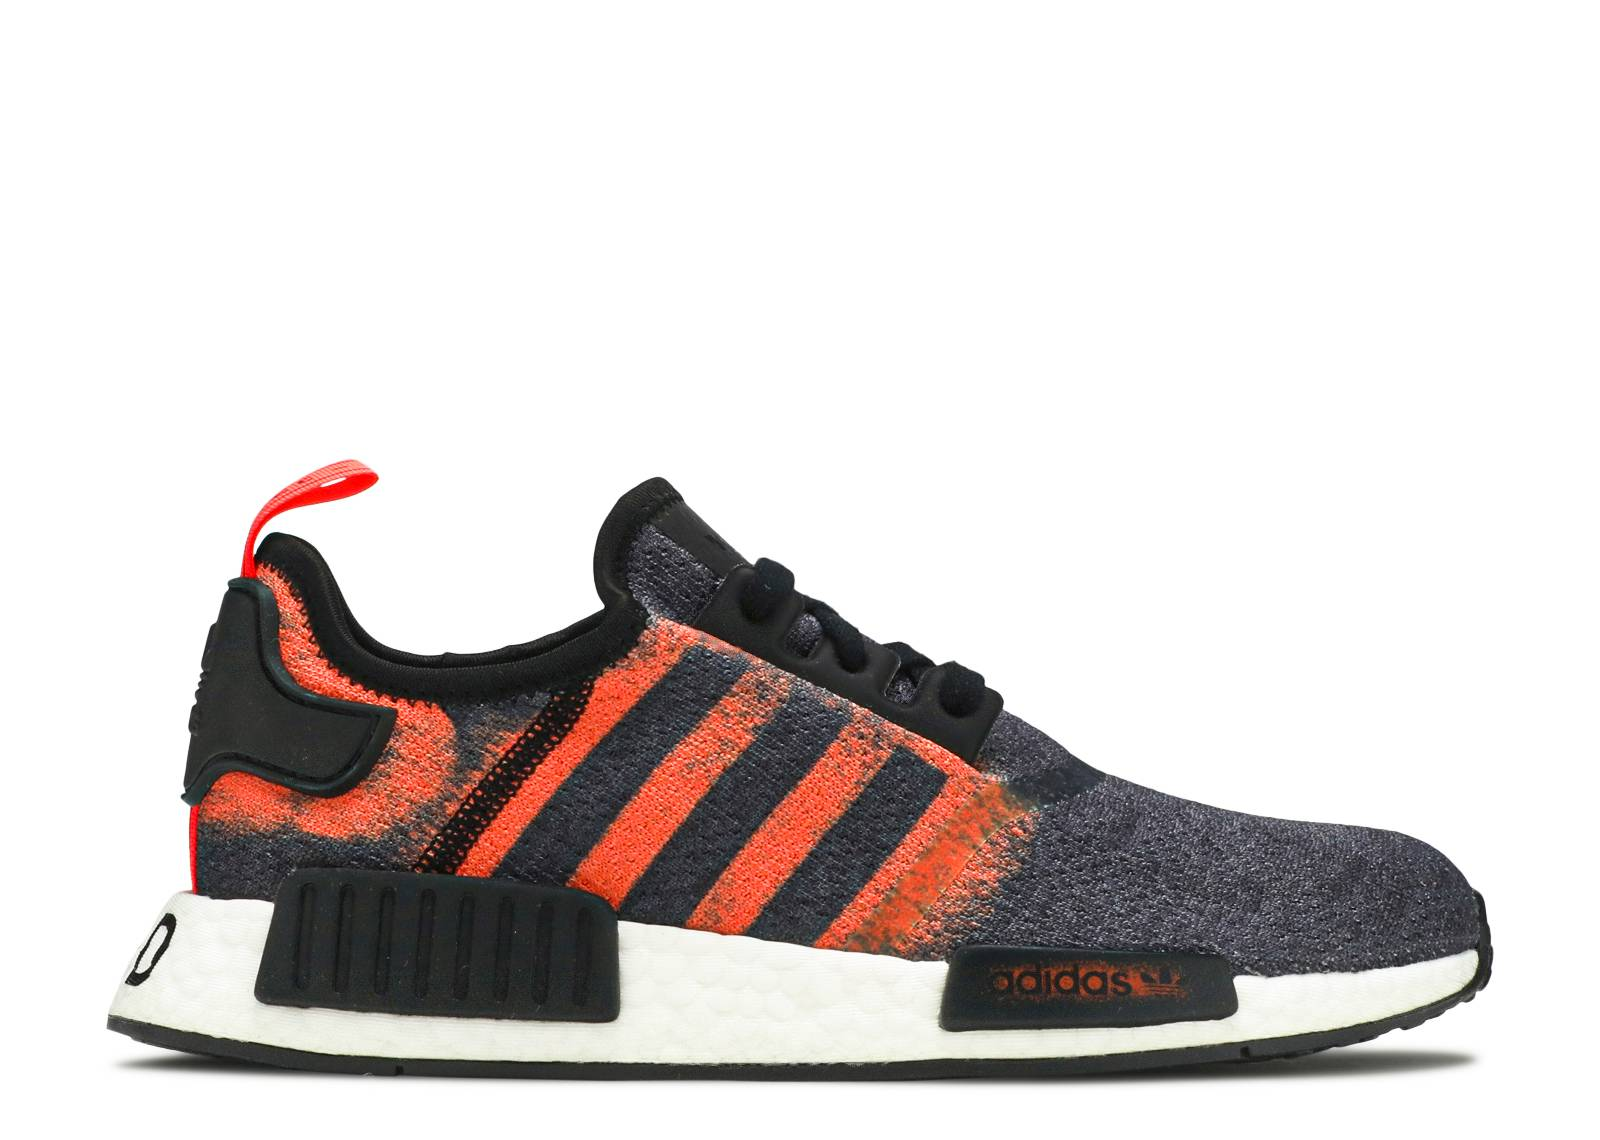 02c06f844db82 Adidas NMD - adidas Originals Men s   Women s Shoes